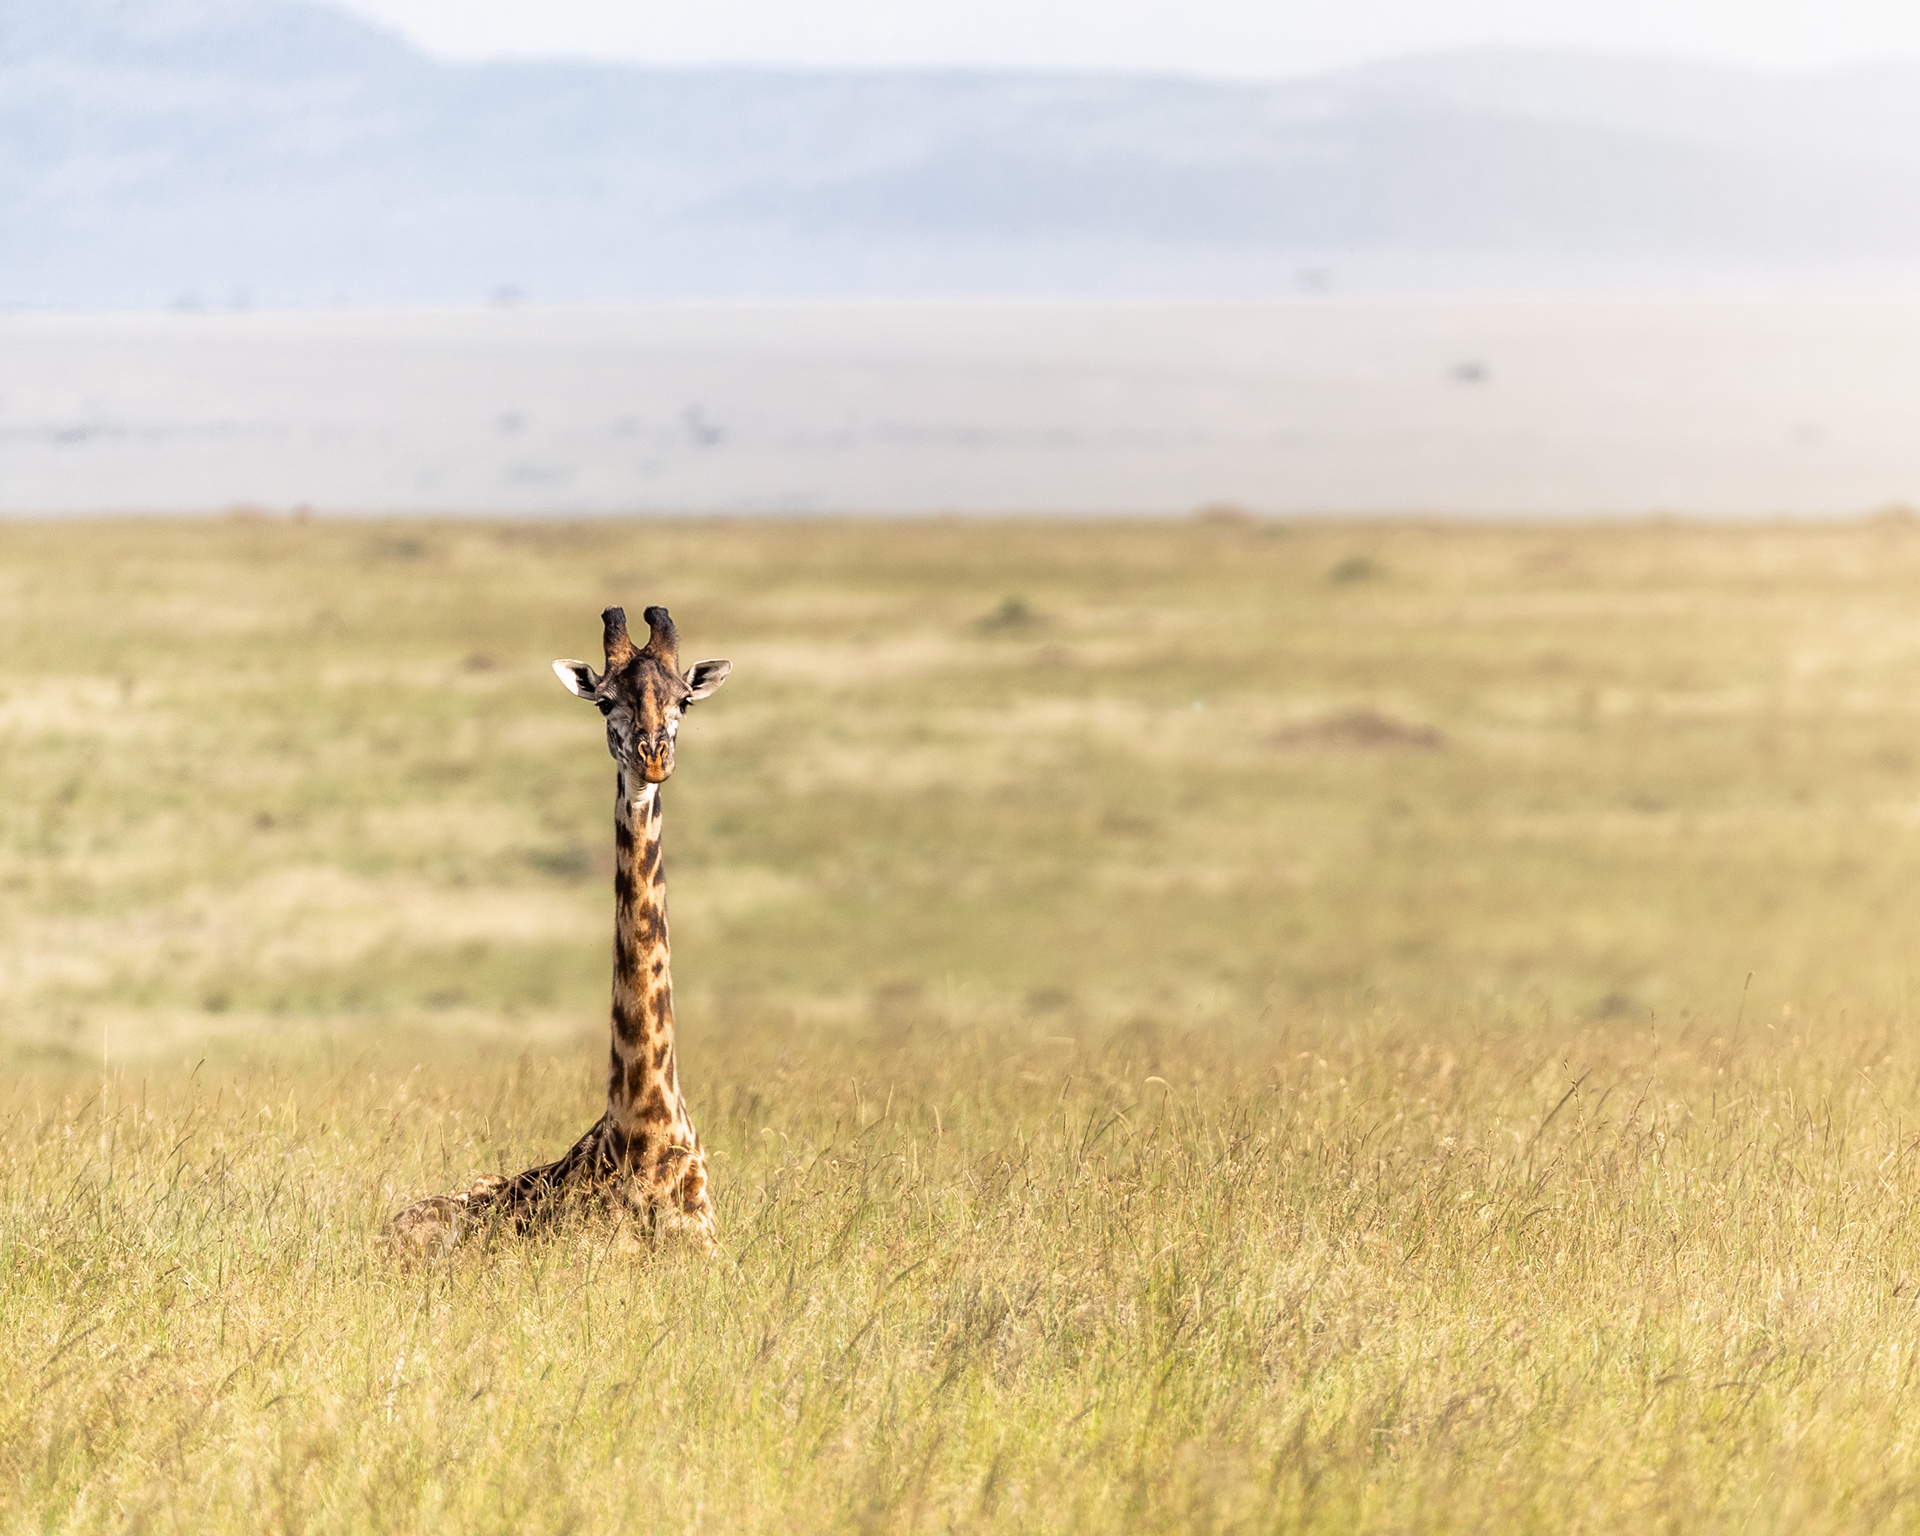 Single Masai Giraffe Lying in Africa Grasslands.jpg